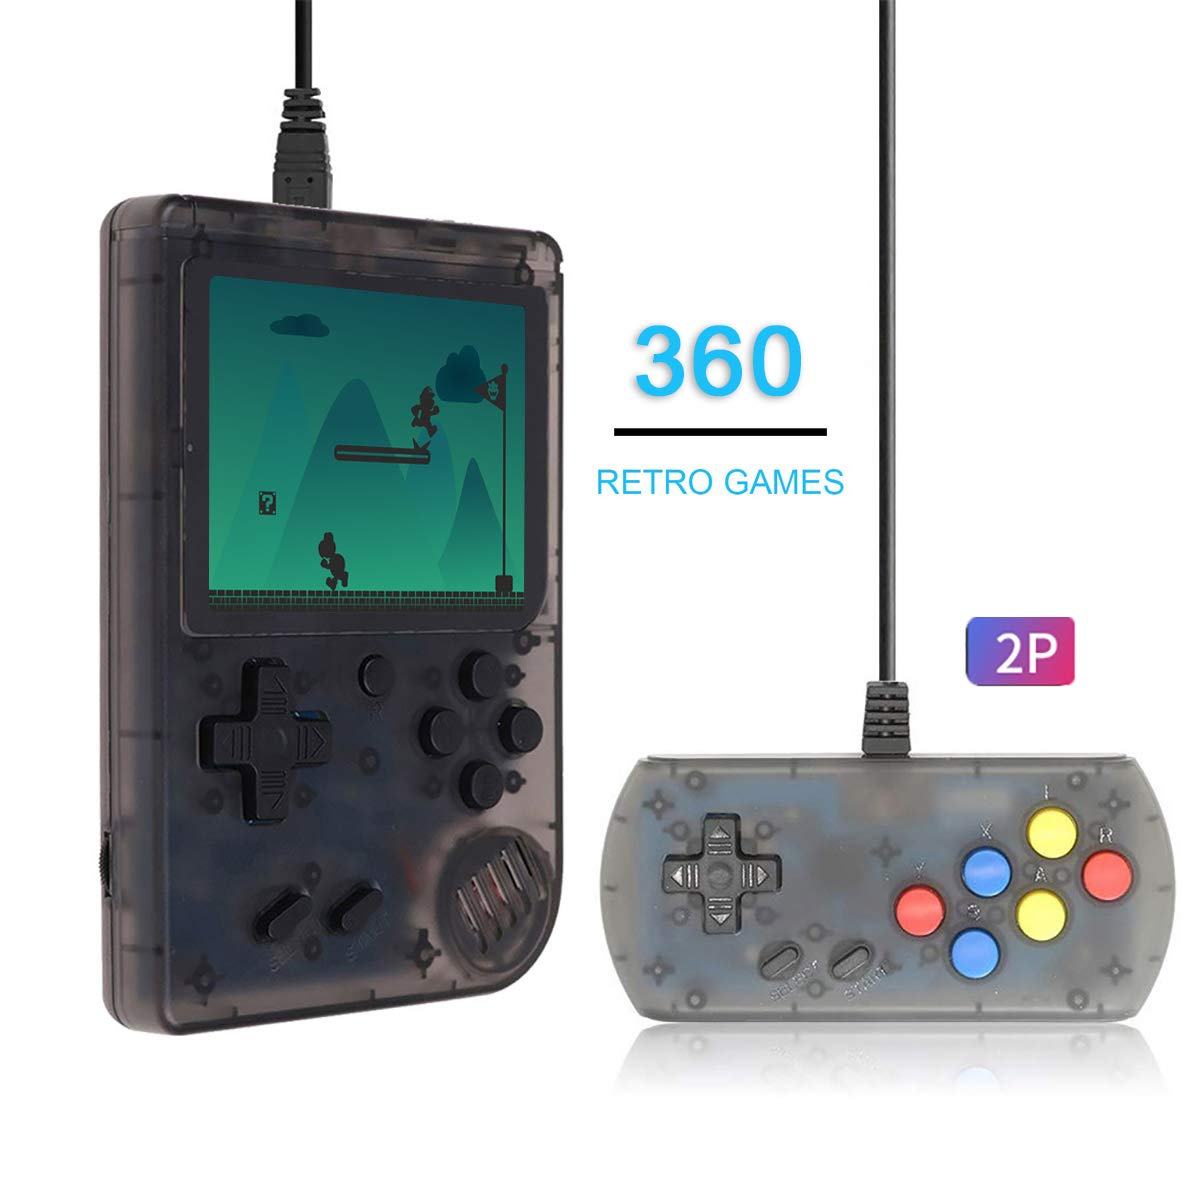 Efunlife Handheld Game Console, 360 Classic Games 3 Inch LCD Screen with 2 Player Controller Portable Retro Game Console Support AV Out TV, Good Gift for Boy Kids